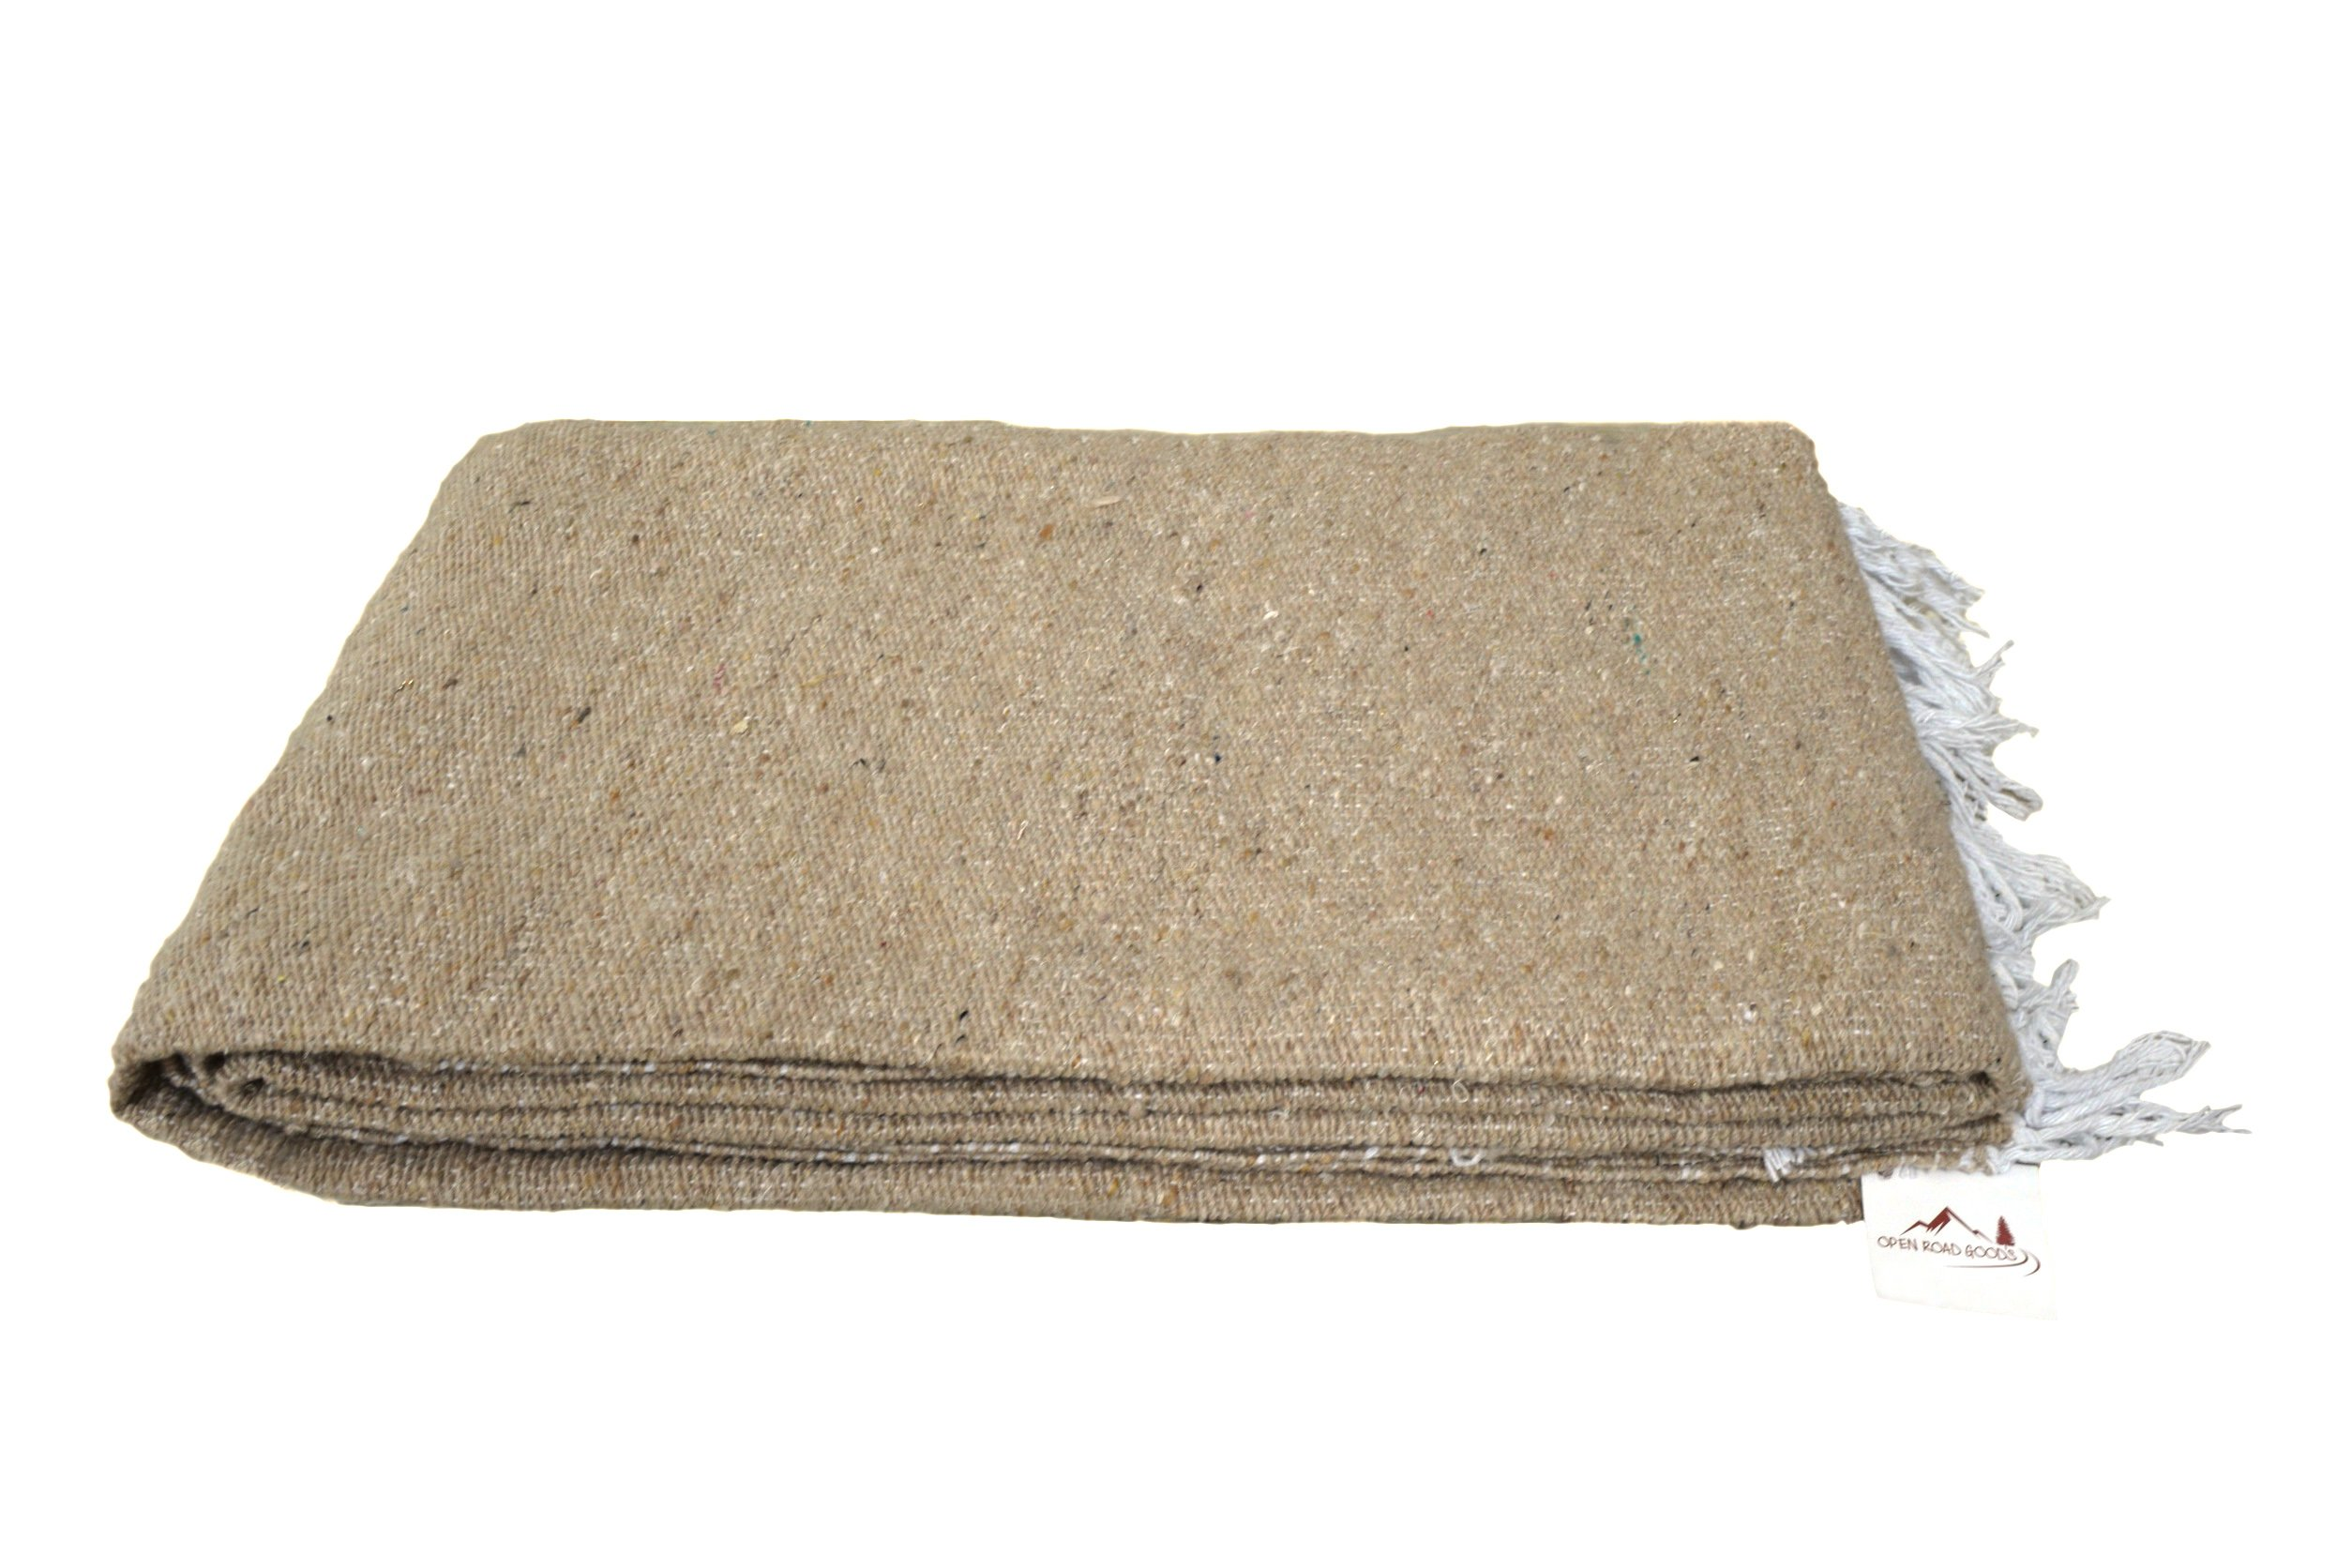 Open Road Goods Handmade Tan/Khaki Yoga Blanket - Thick Mexican Blanket or Throw - Made for Yoga!